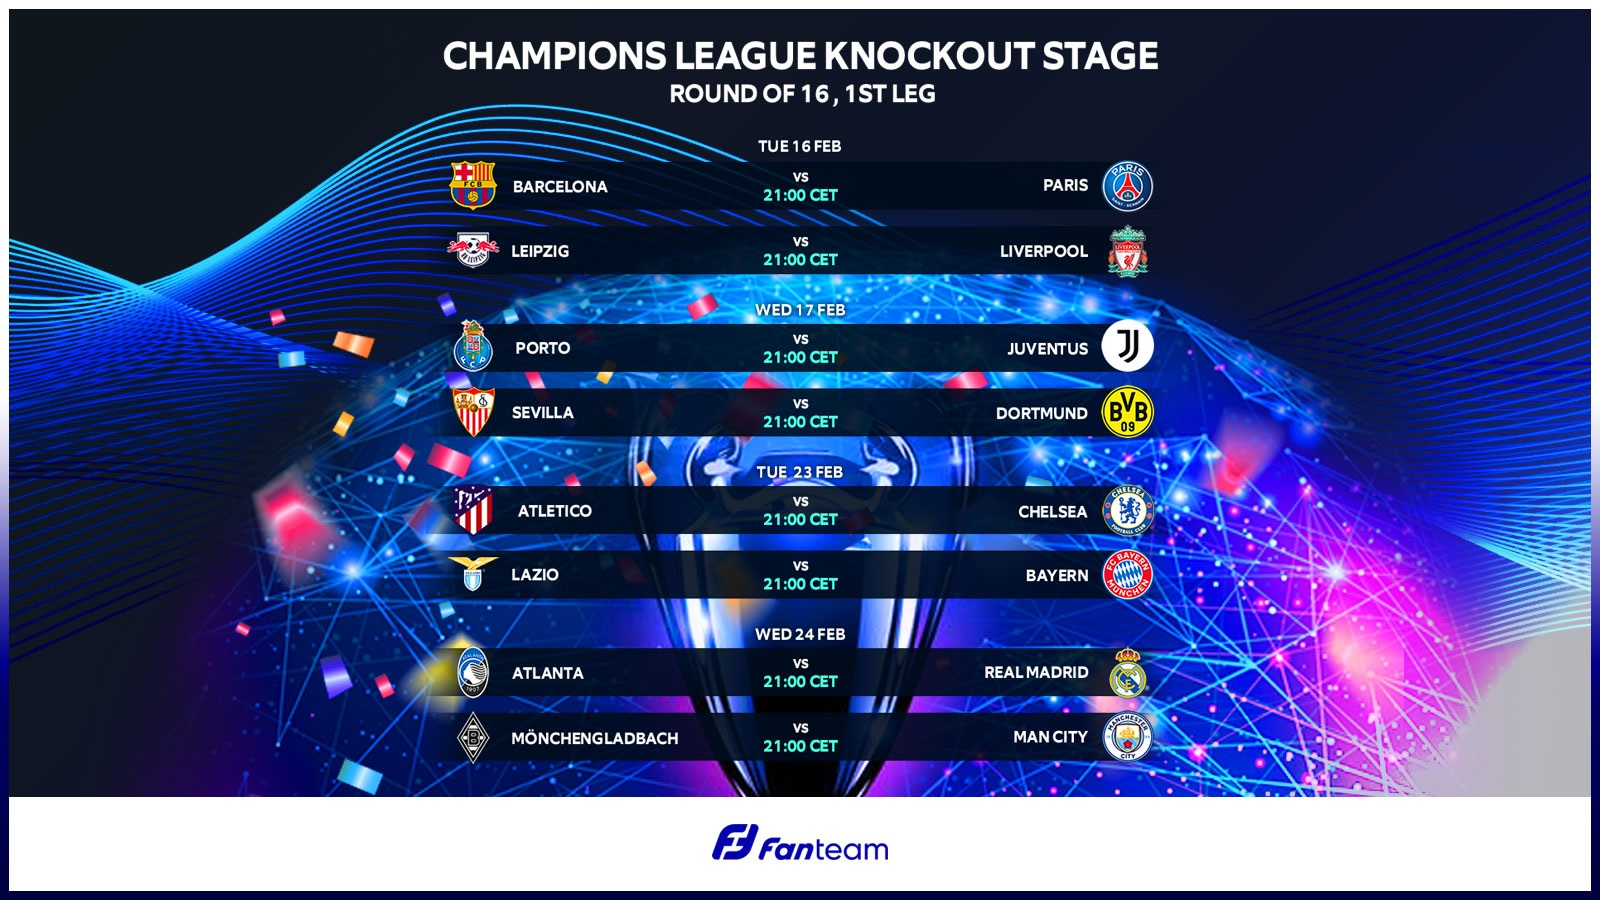 FanTeam Champions League fantasy football - round of 16 fixtures